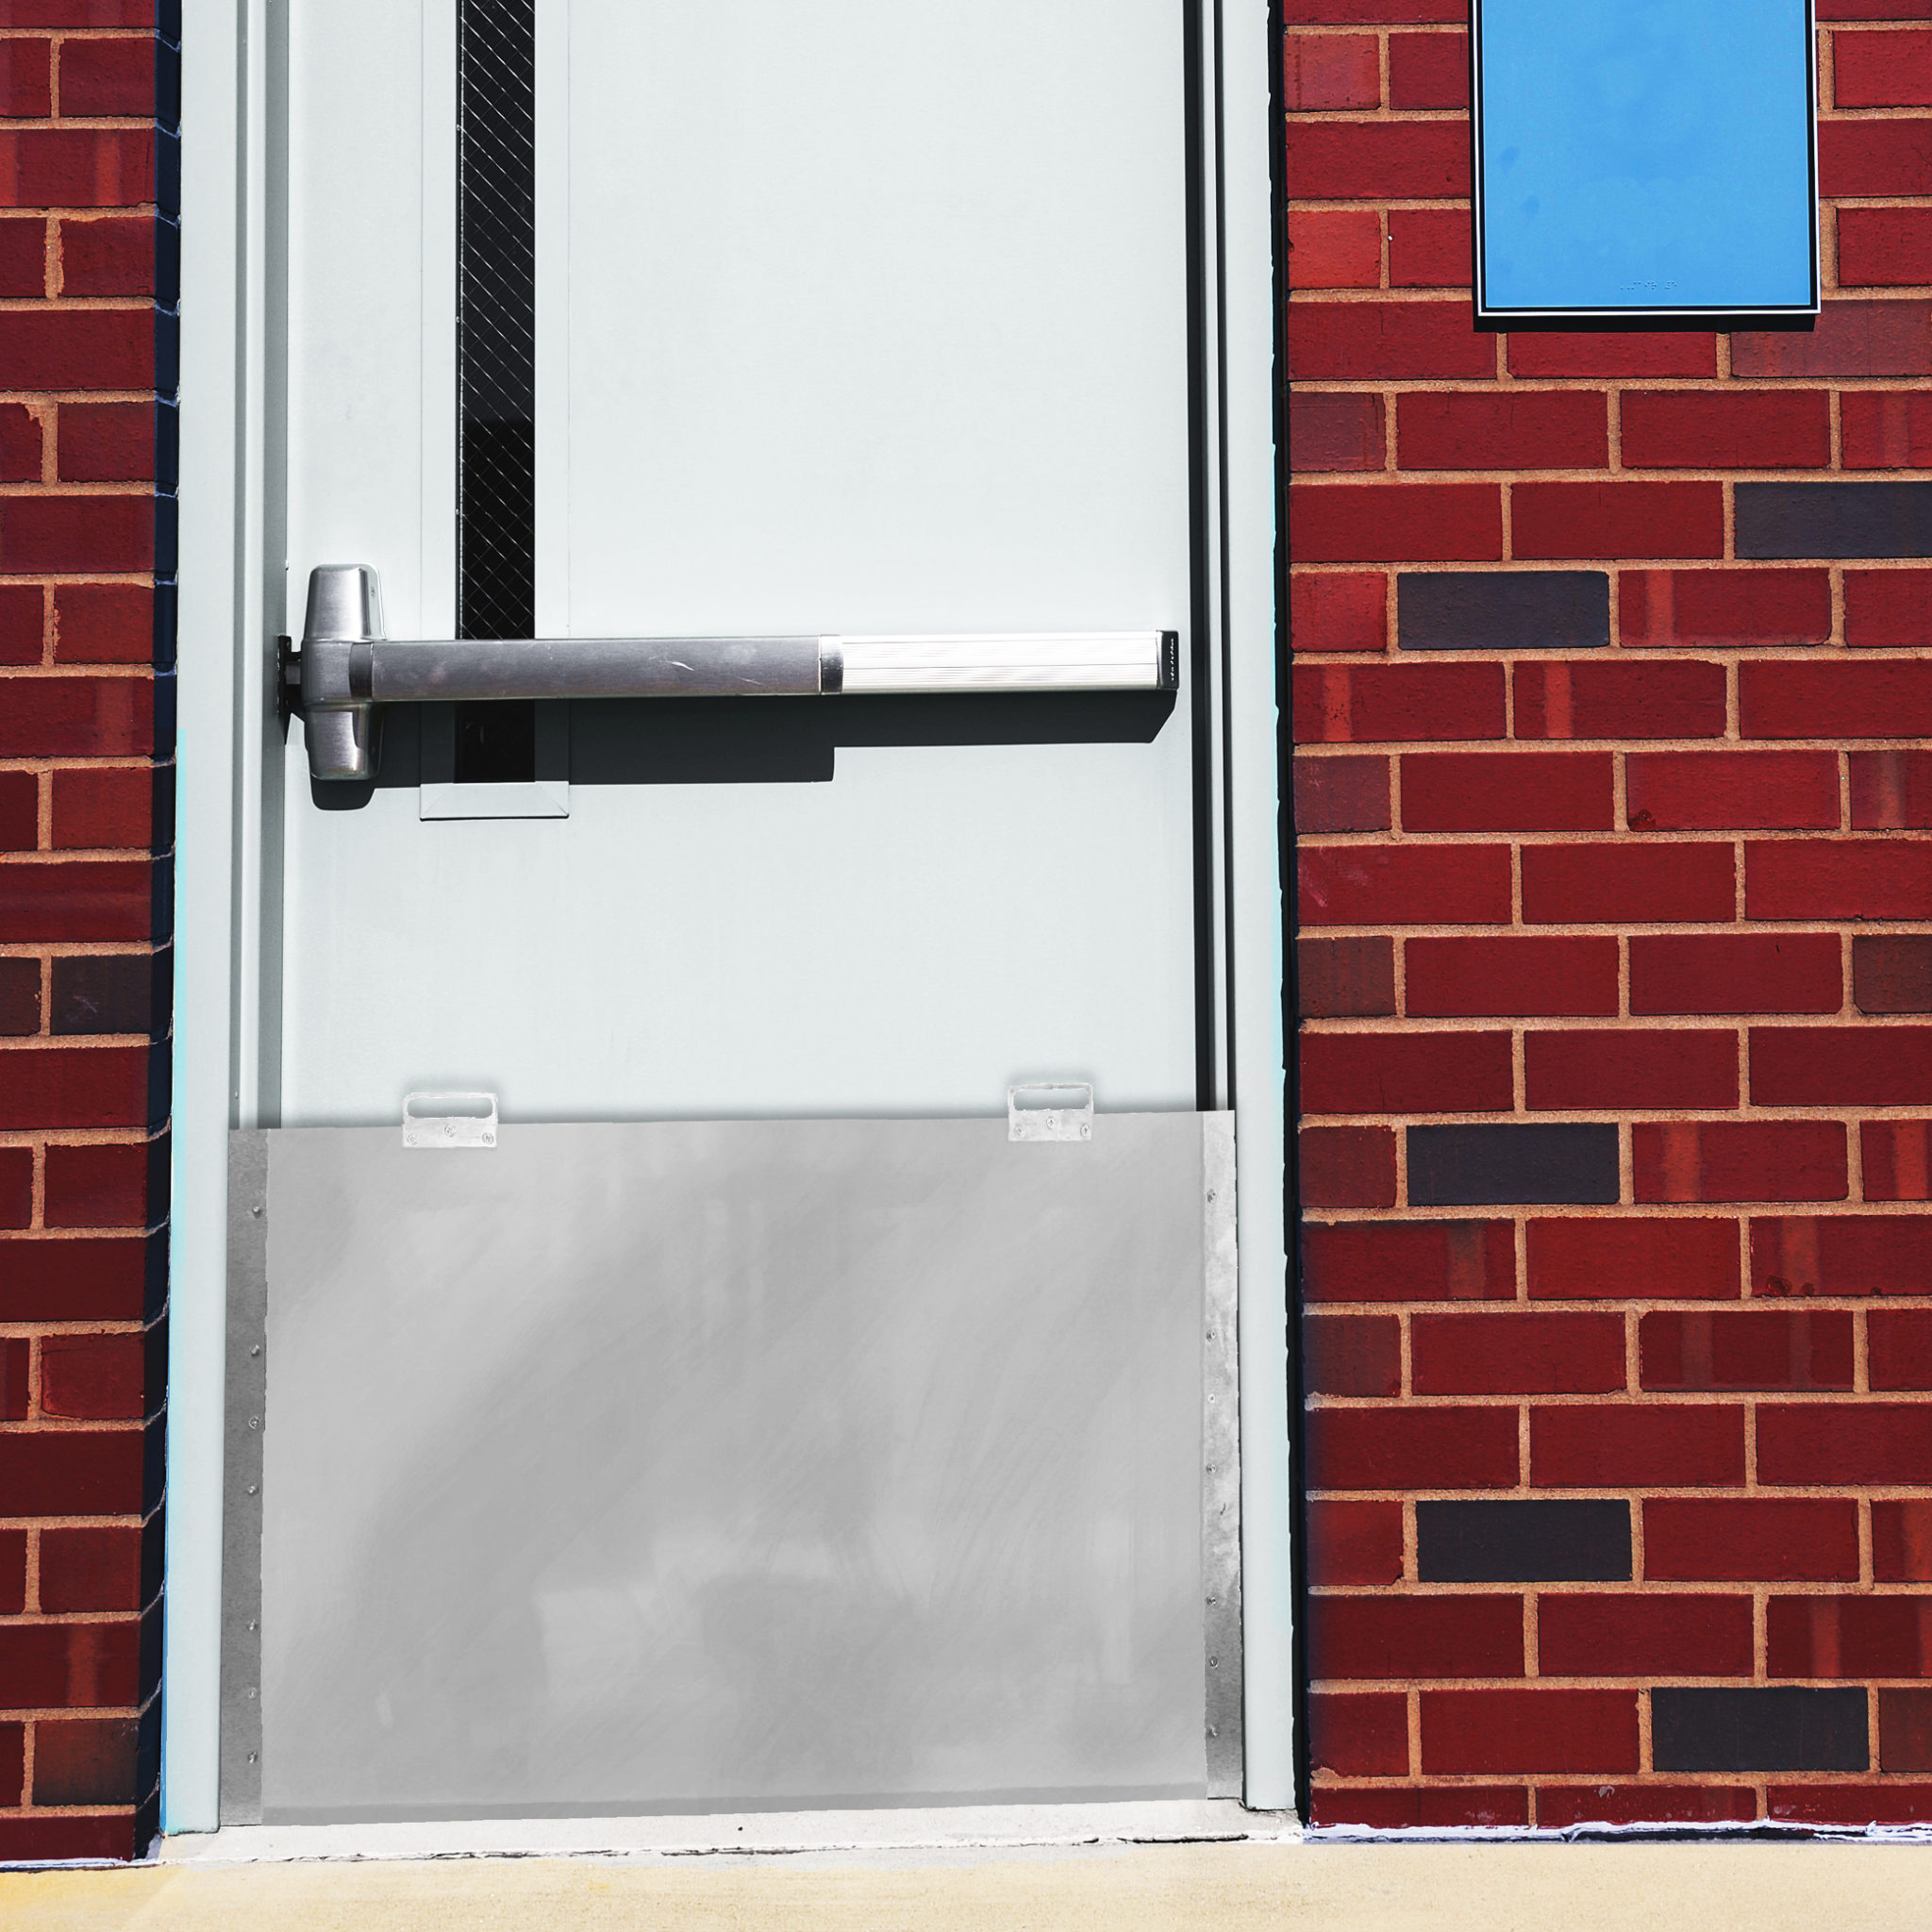 & Flood Protection for your Door: Flood Barrier Shields